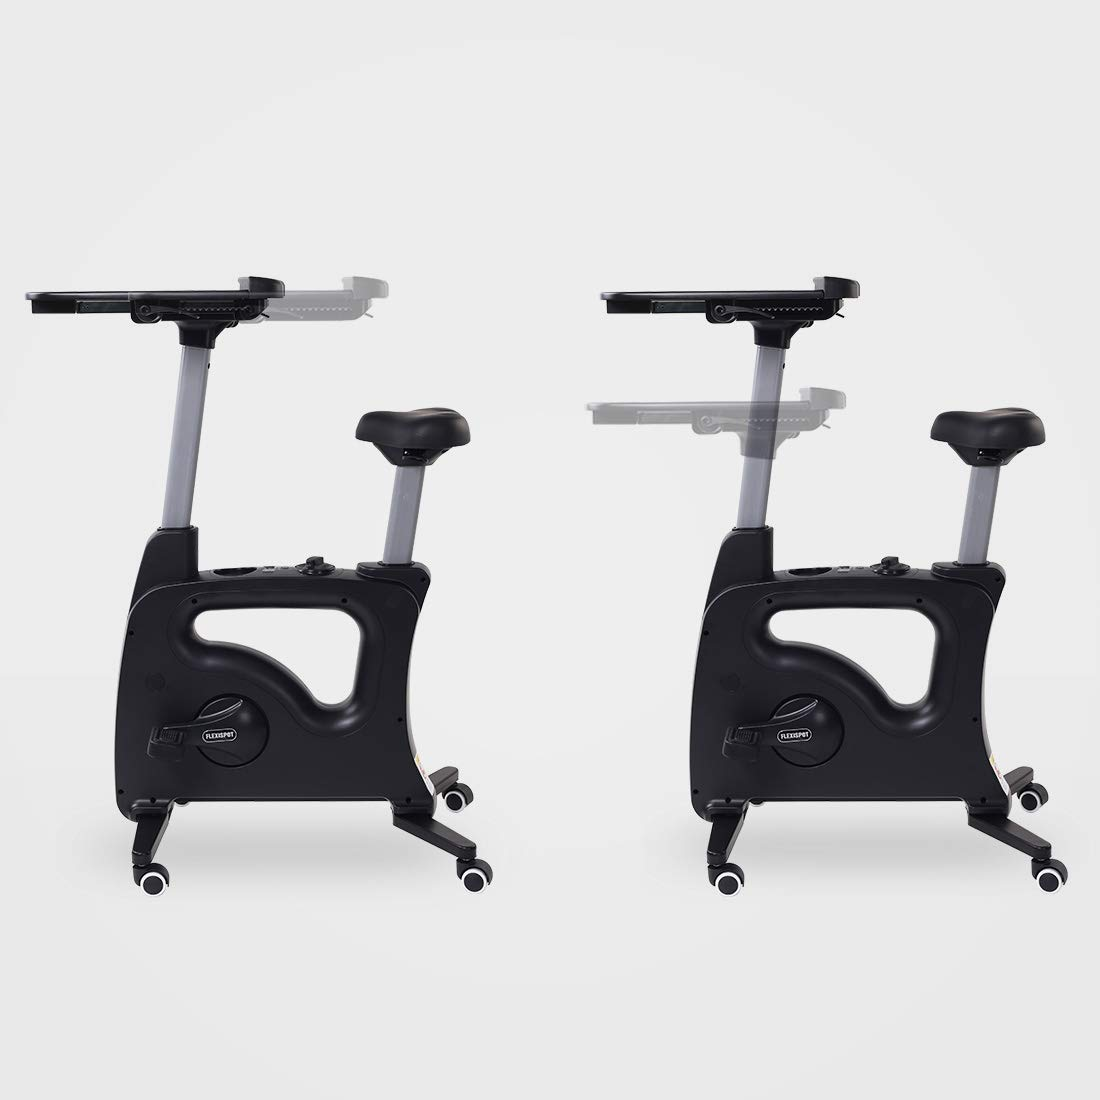 FLEXISPOT Home Office Upright Stationary Fitness Exercise Cycling Bike Height Adjustable Standing Desk - Deskcise Pro Black by FLEXISPOT (Image #4)